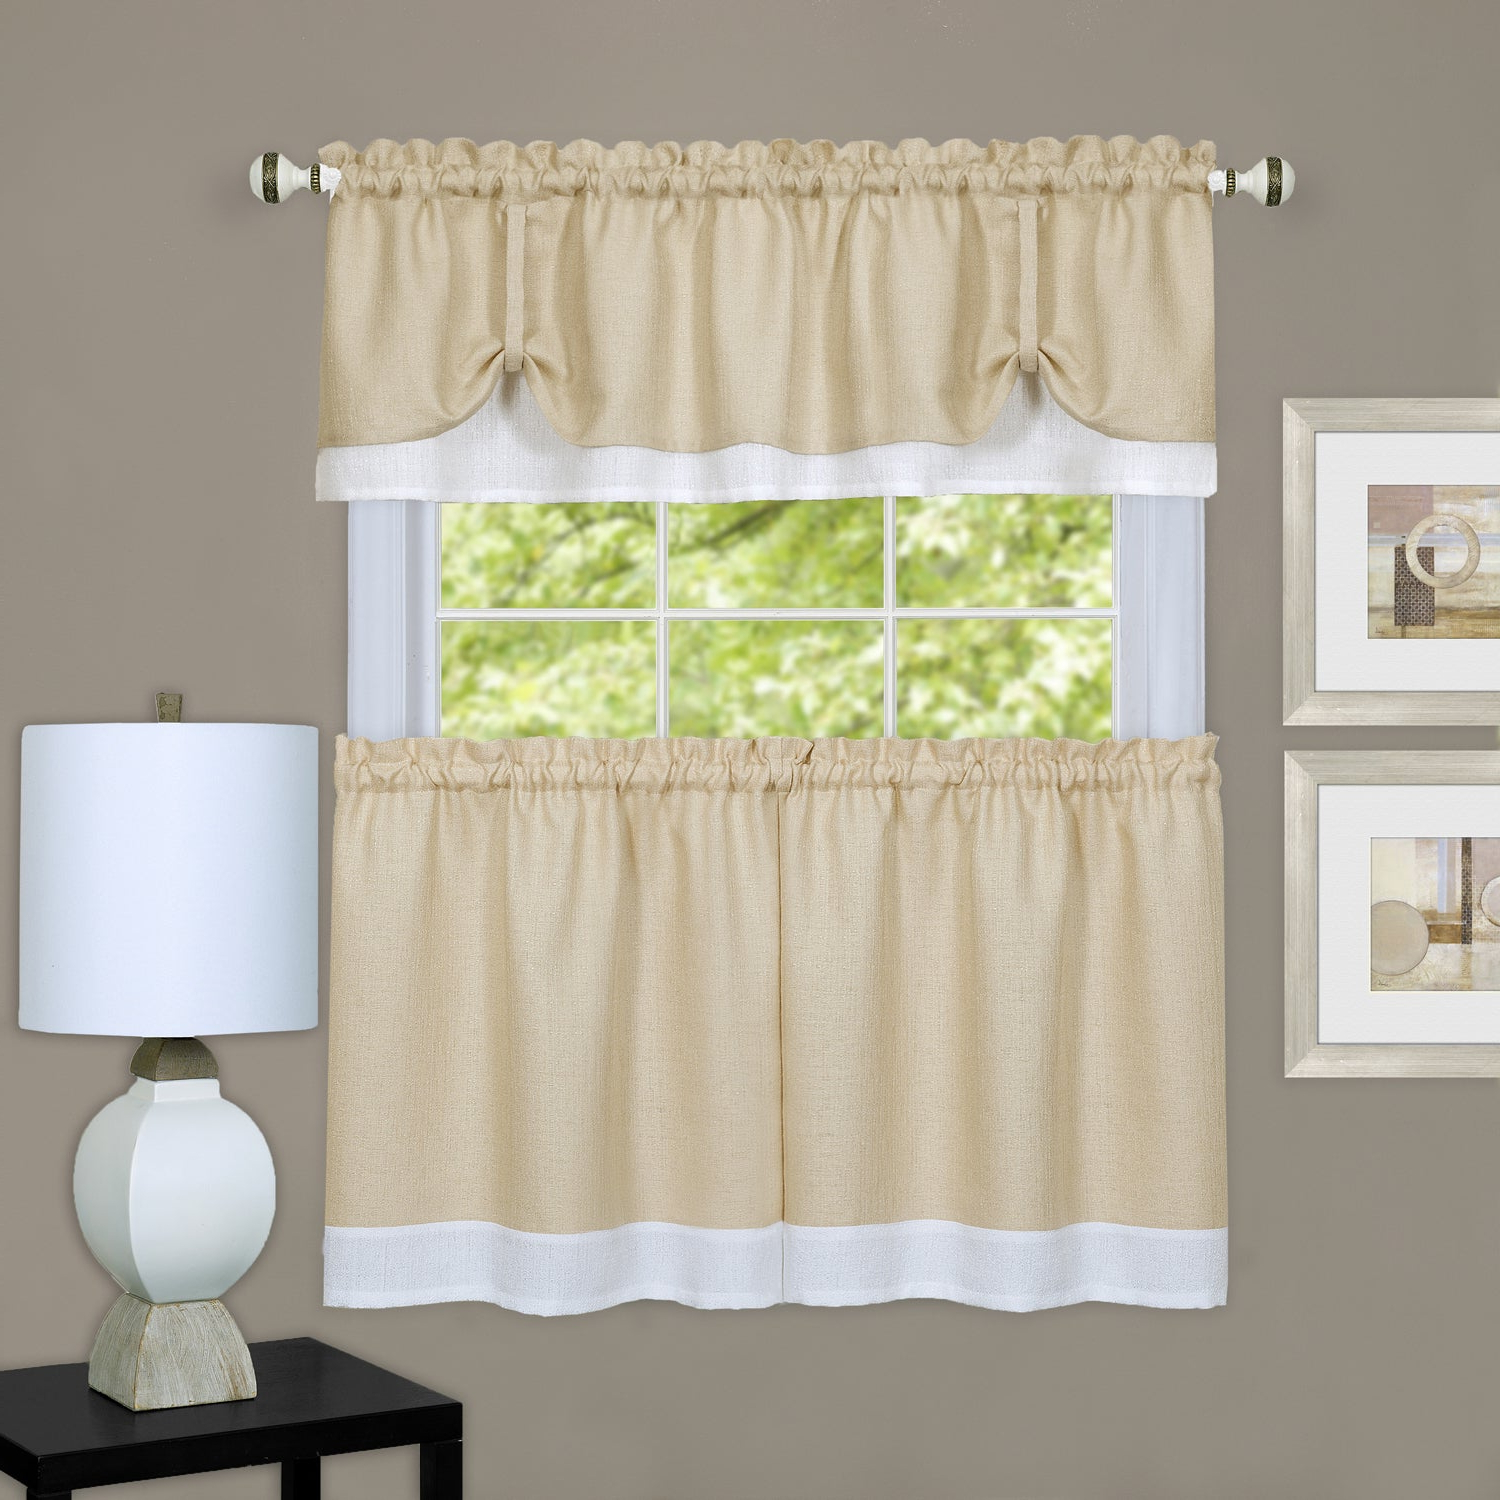 Details About Double Layer Tie Up Tan/ White 3 Piece Tier And Valance Window Curtain Set With Regard To Famous Barnyard Window Curtain Tier Pair And Valance Sets (View 20 of 20)